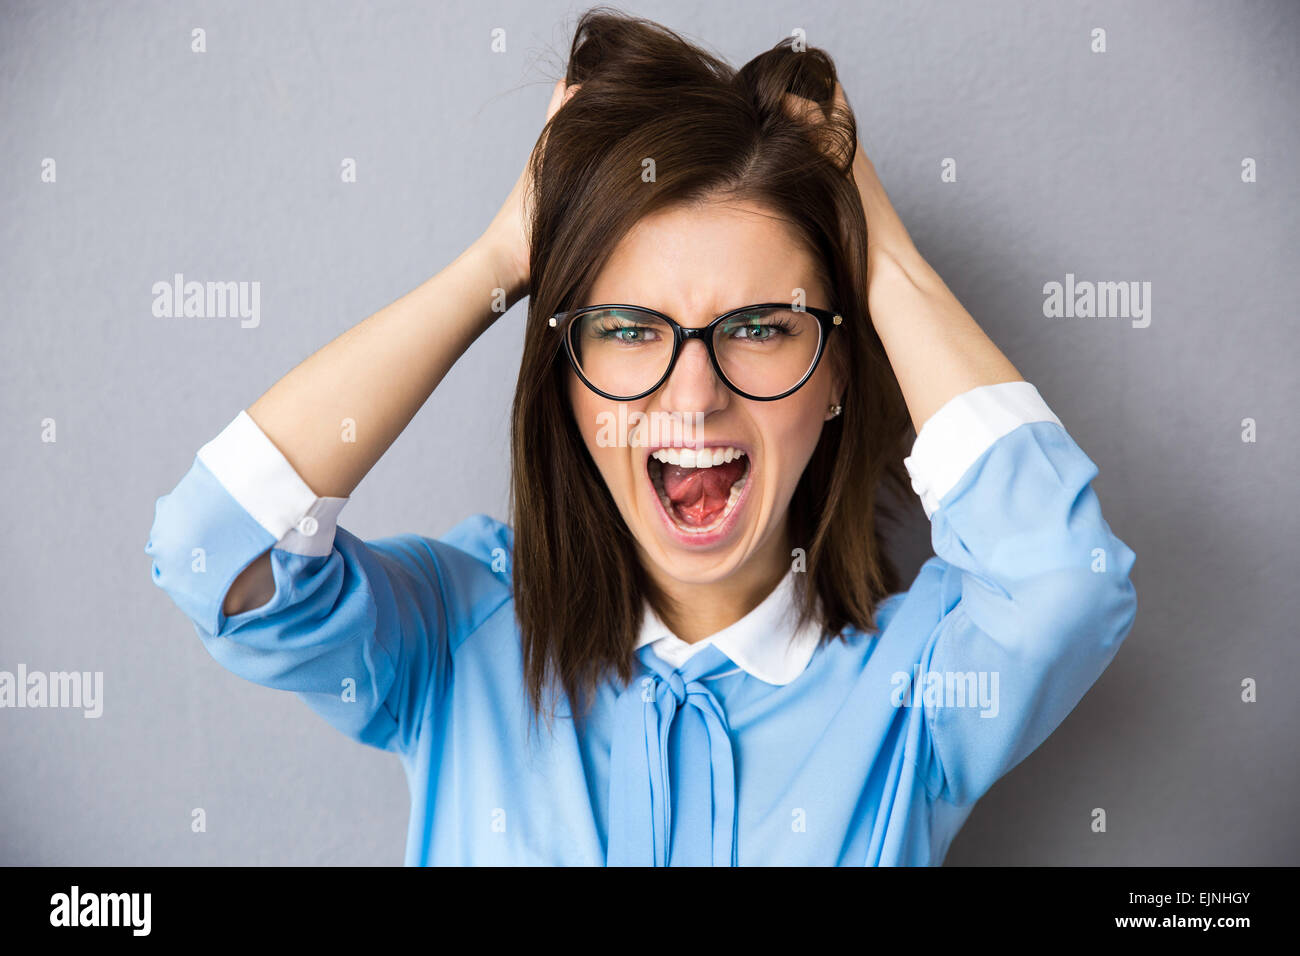 Angry businesswoman touching her hair and screaming over gray background. Wearing in blue shirt and glasses. Looking - Stock Image